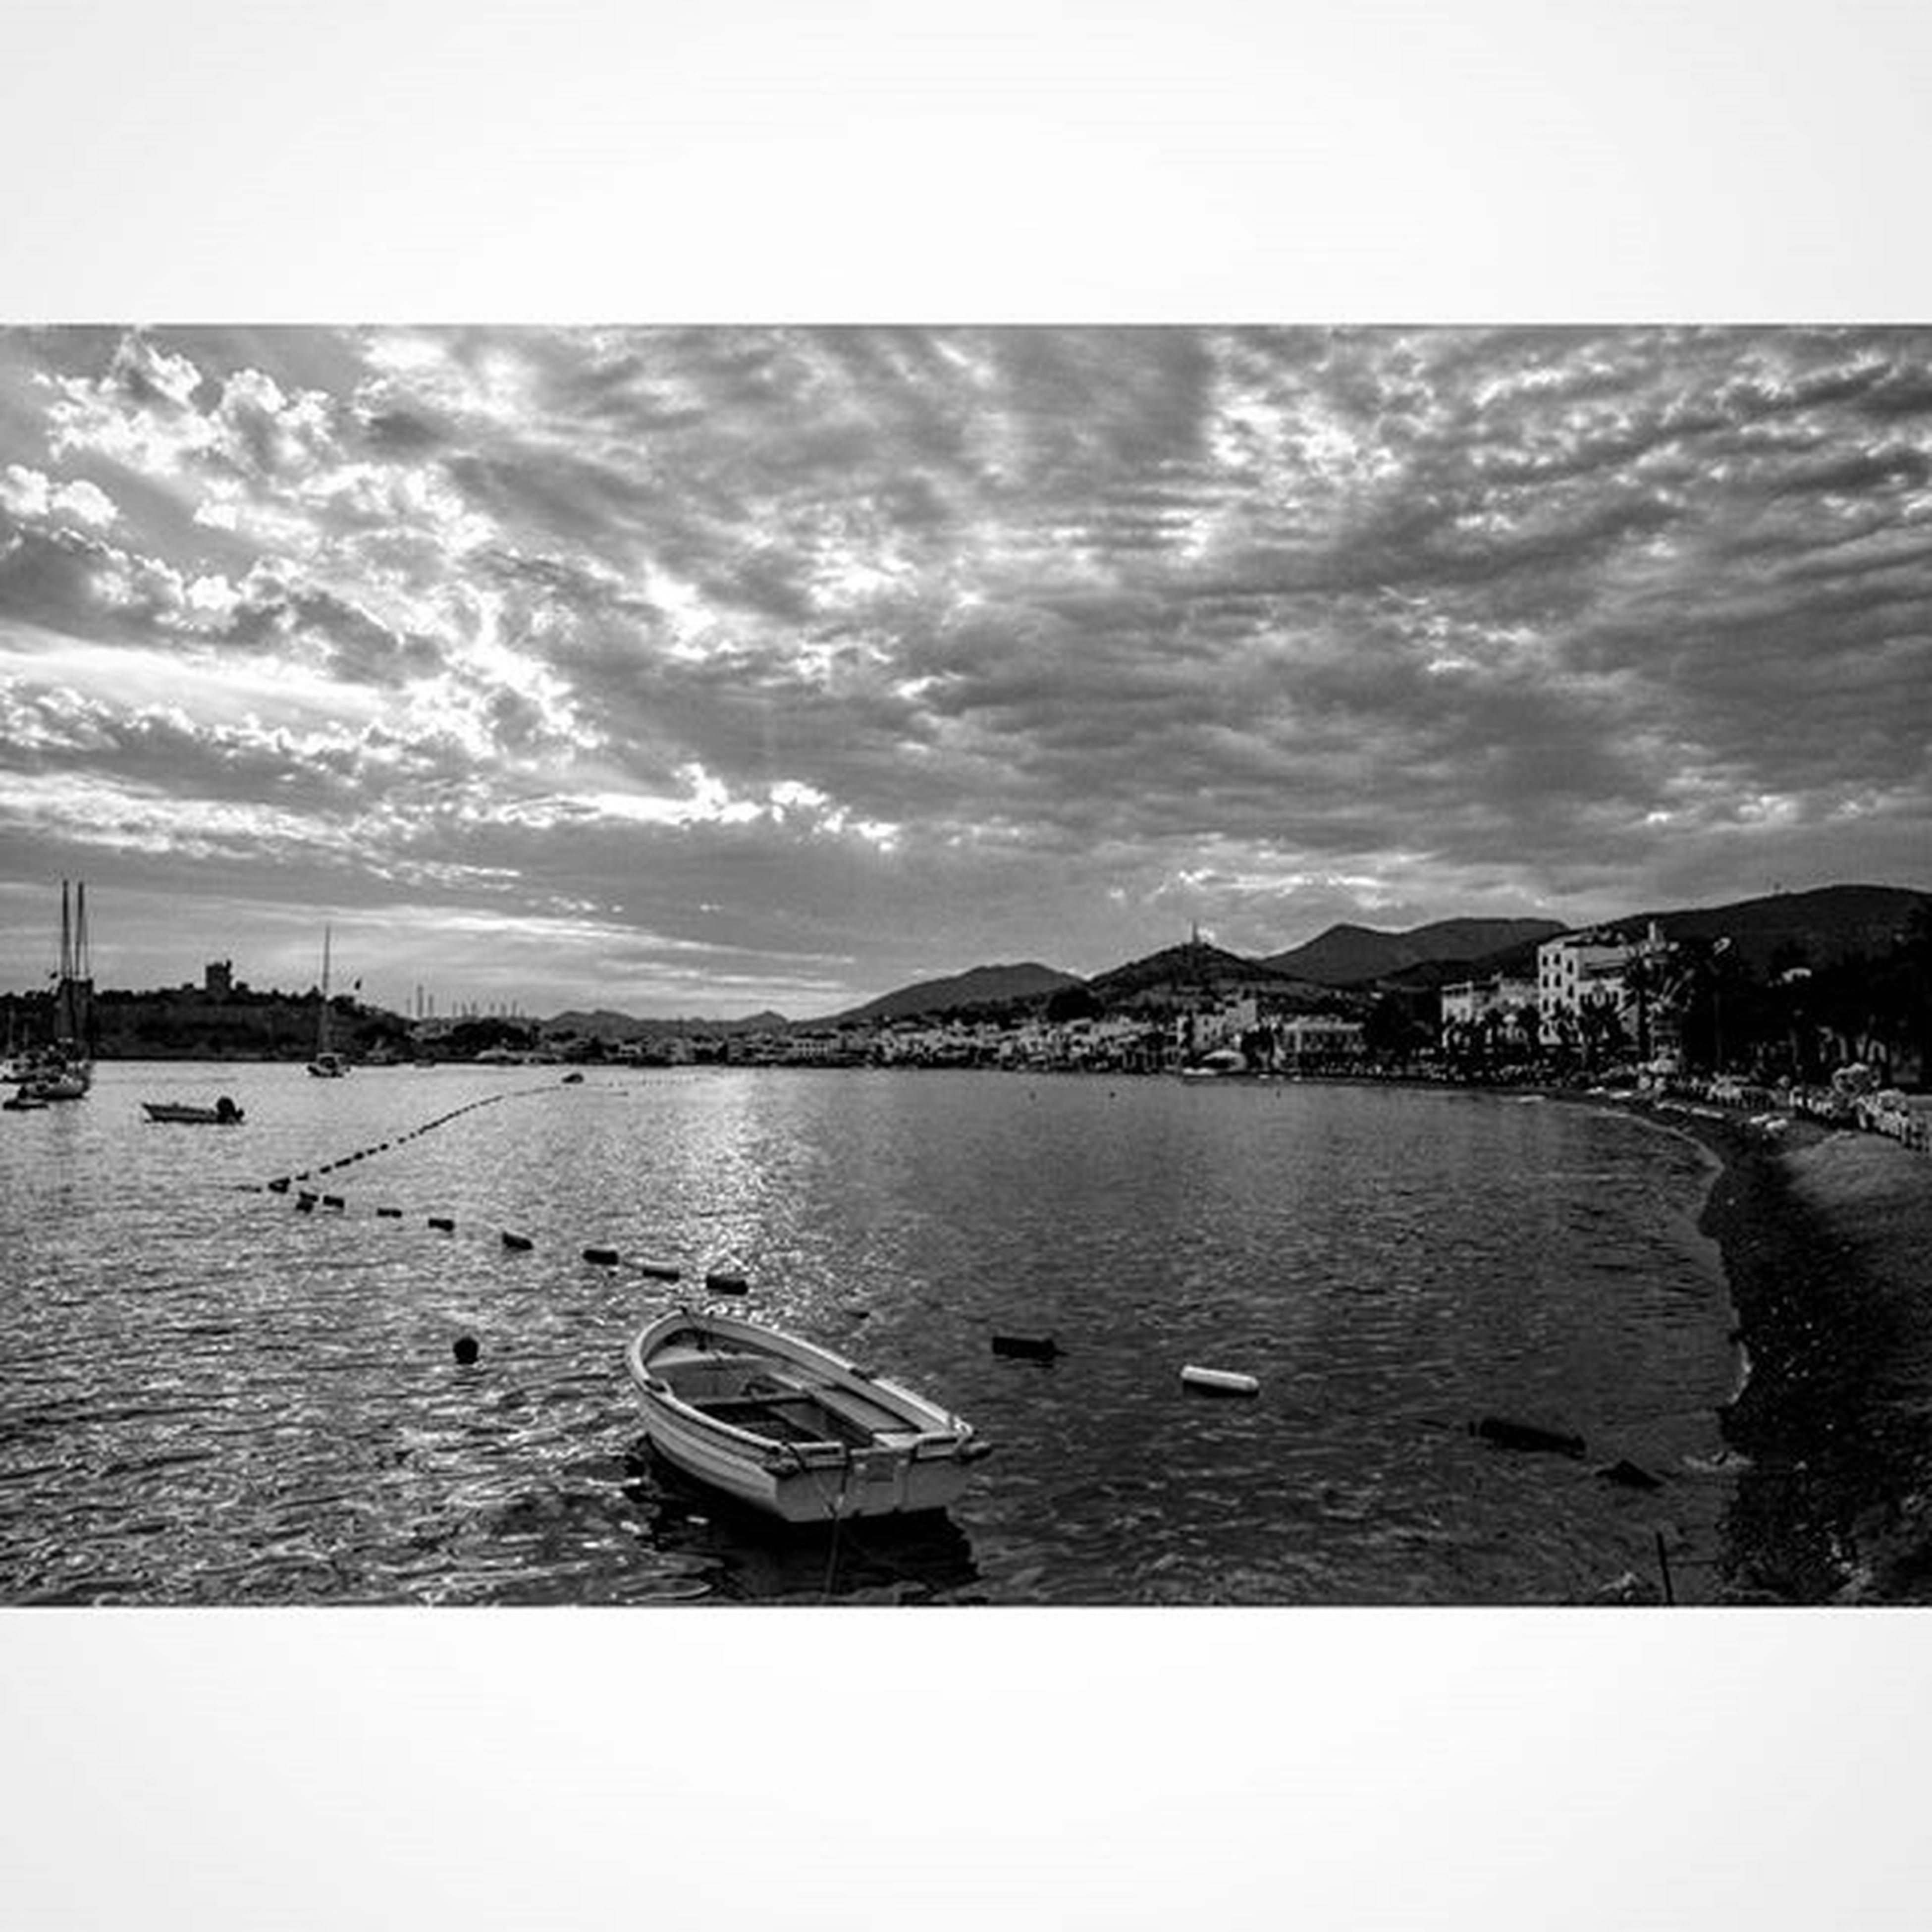 water, sky, transfer print, transportation, nautical vessel, mode of transport, auto post production filter, river, sea, tranquility, boat, moored, tranquil scene, lake, nature, scenics, cloud - sky, built structure, day, pier